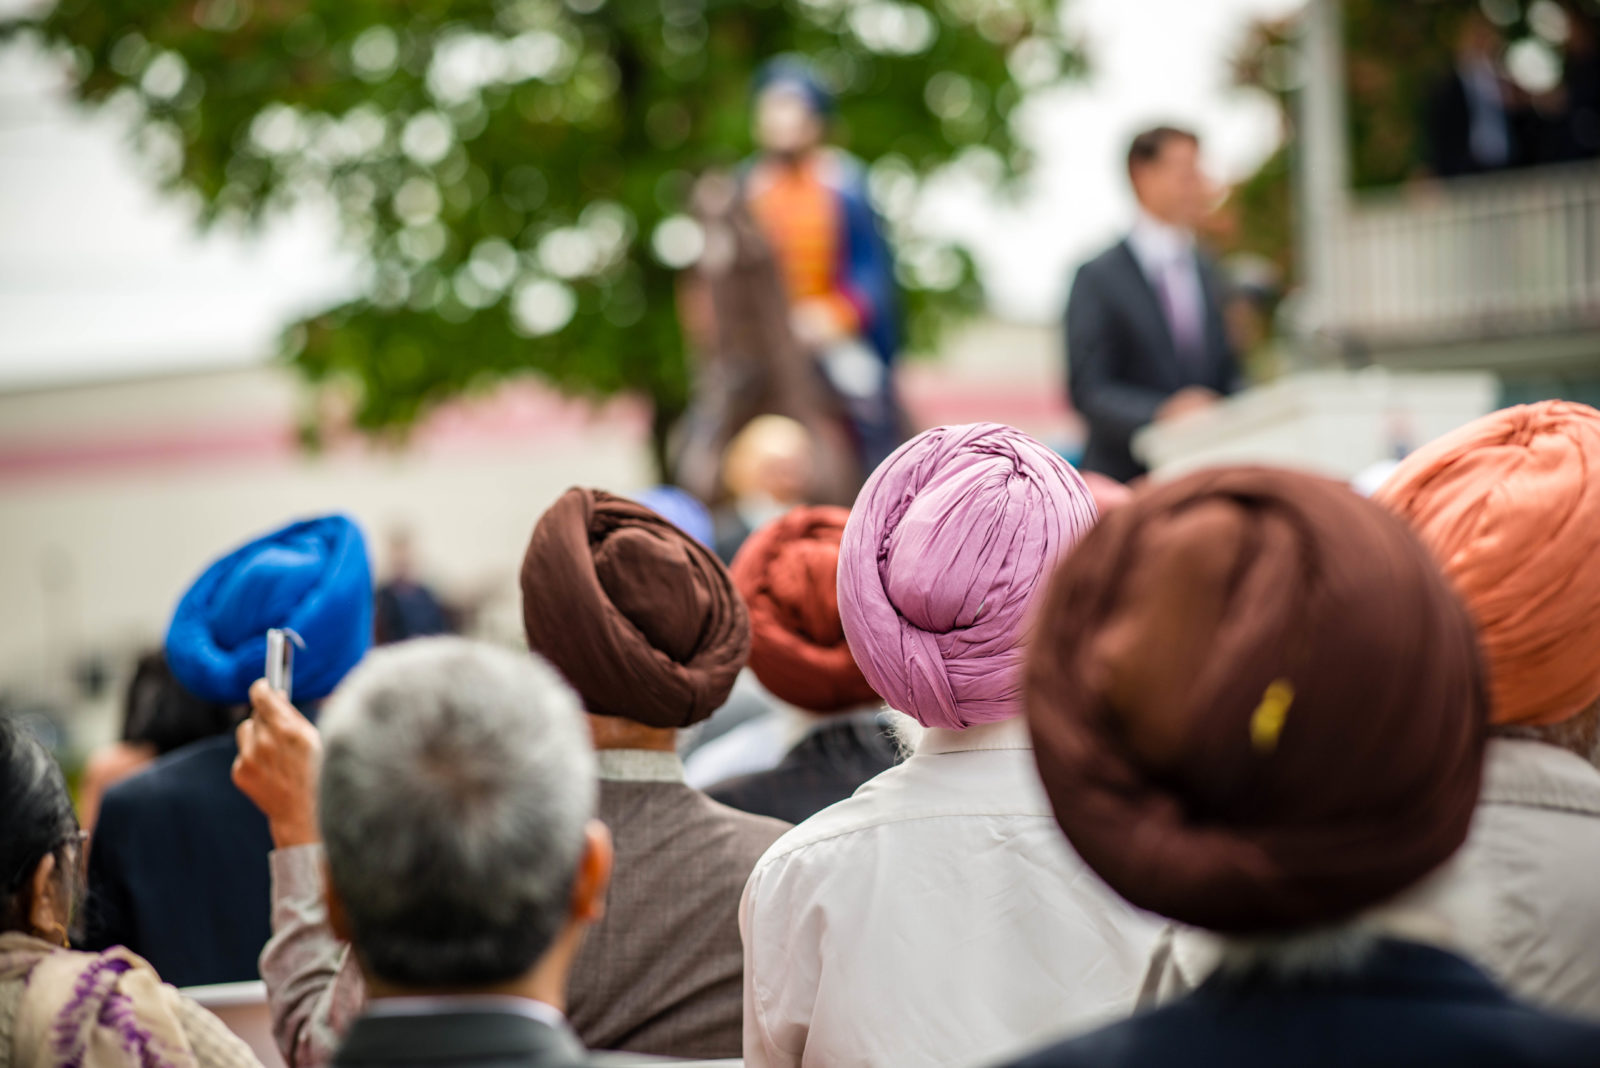 When Will Sikh Men Actually Stand Up?